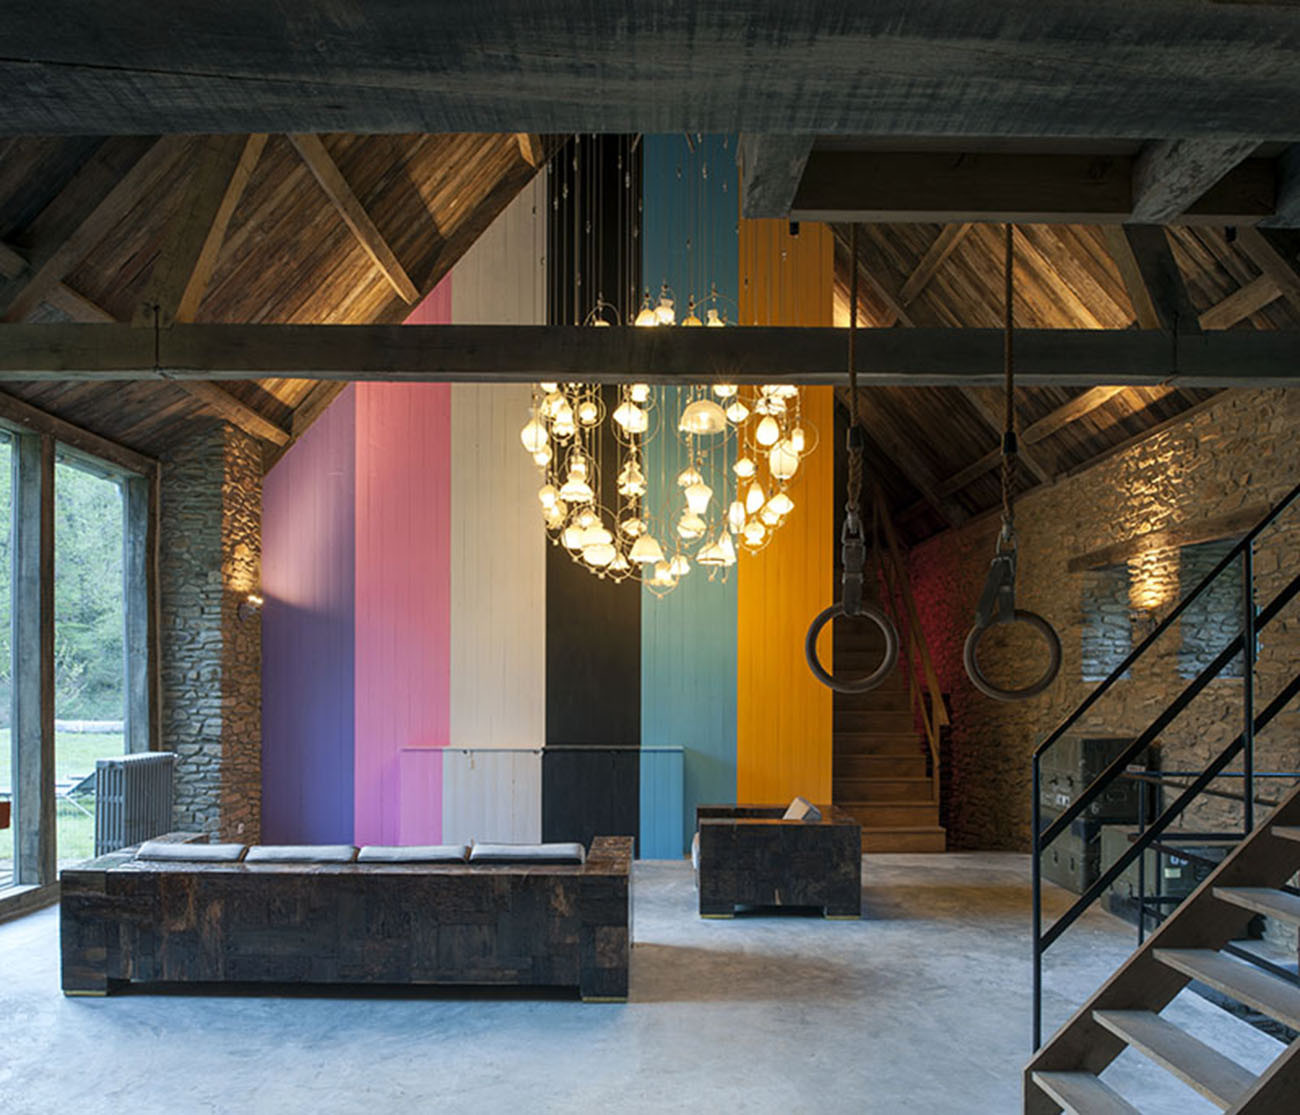 Mill Mavaleix / Piet Hein Eek, © Thomas Mayer